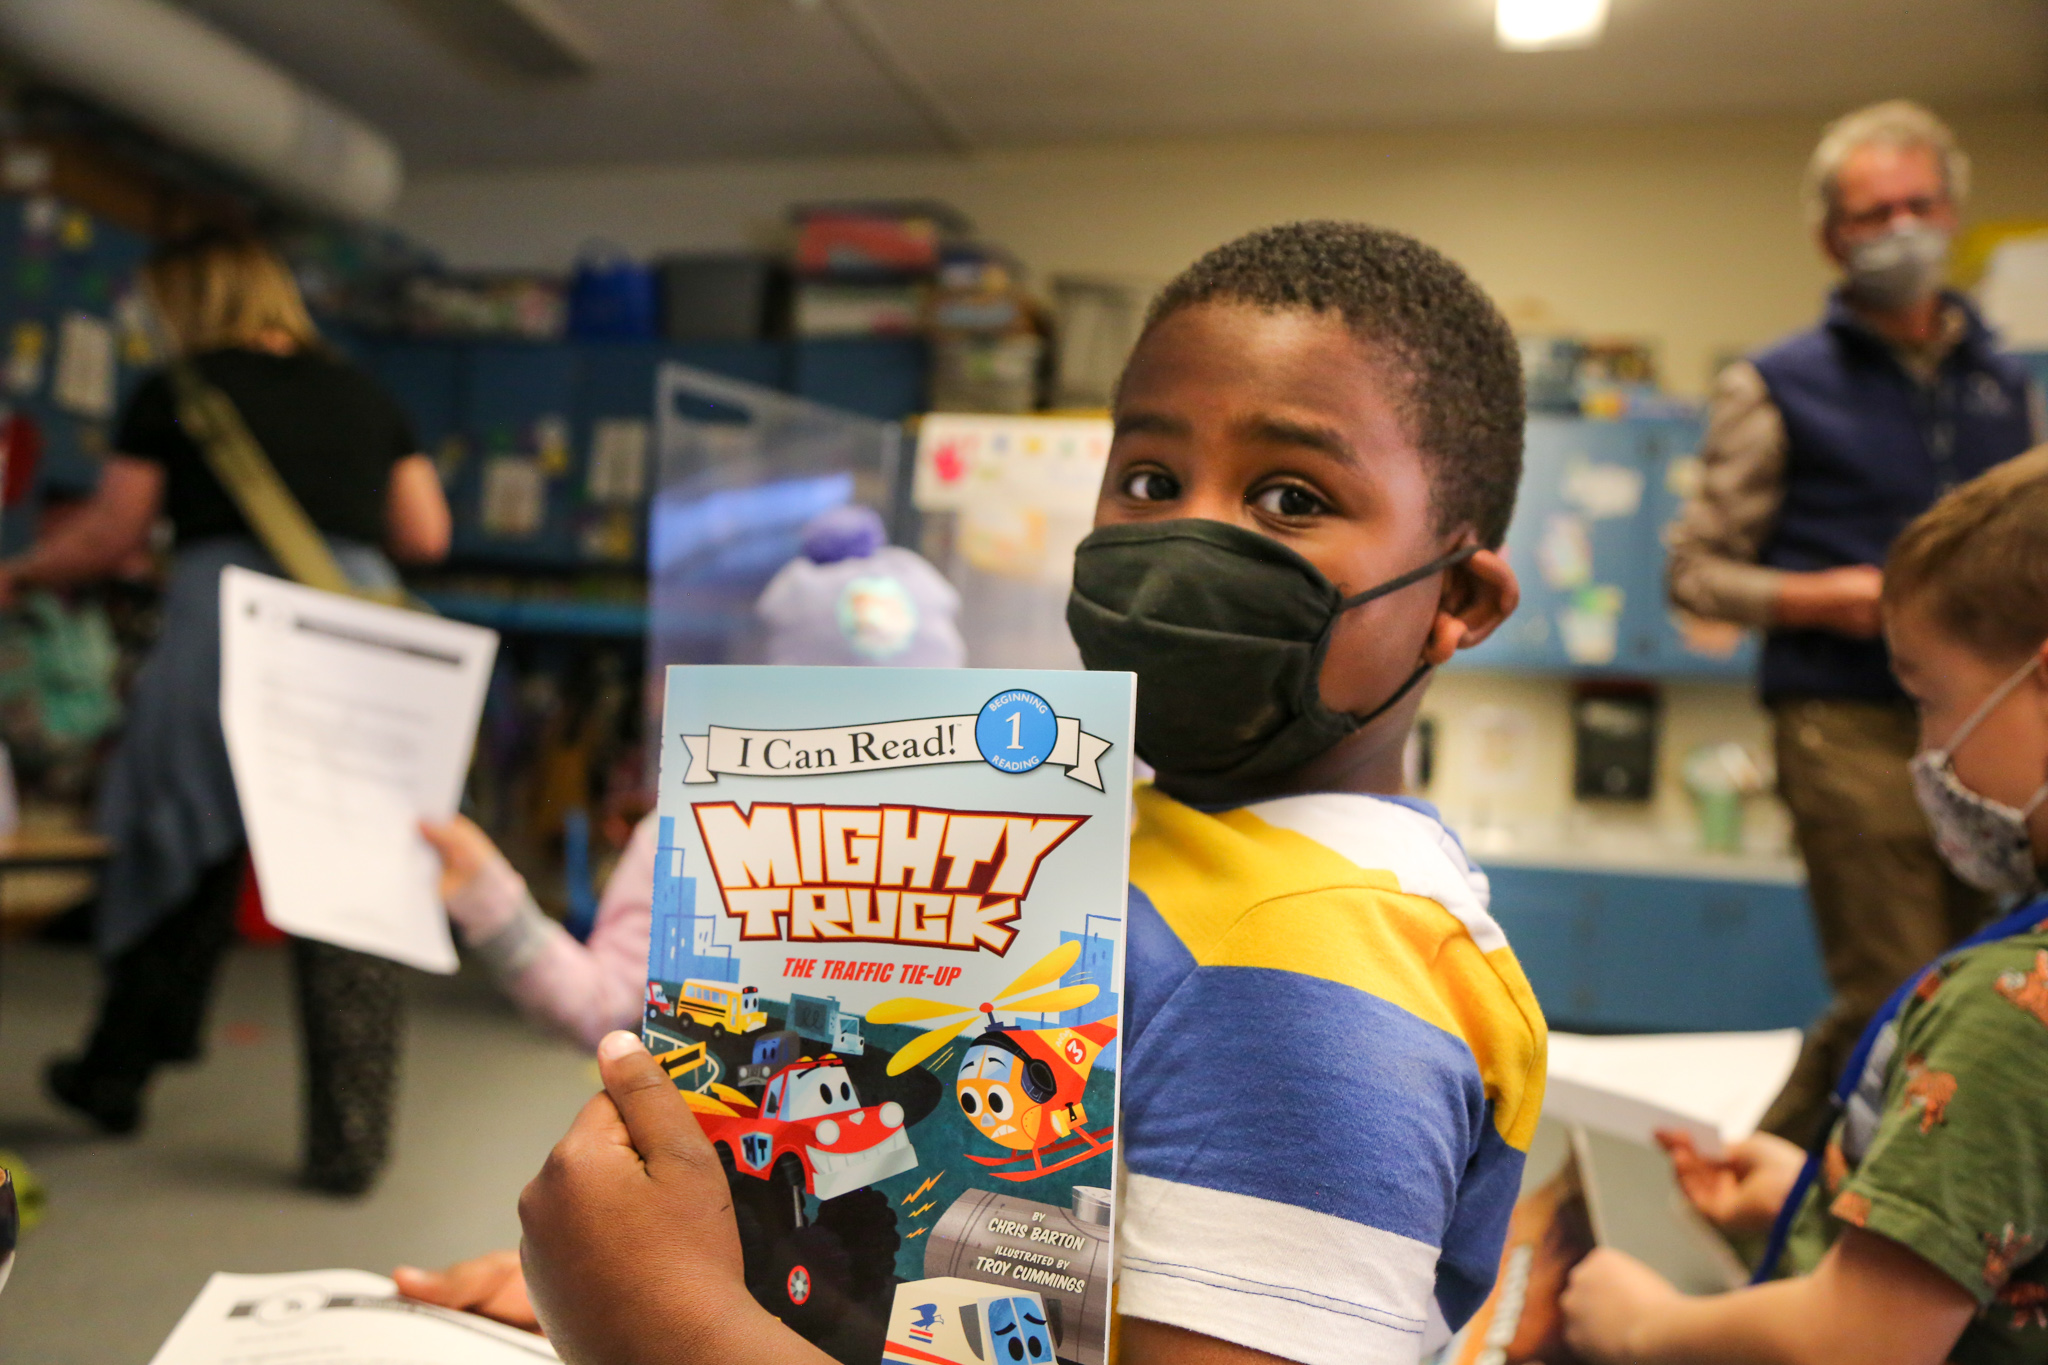 A Dunn Elementary student holds up a book.